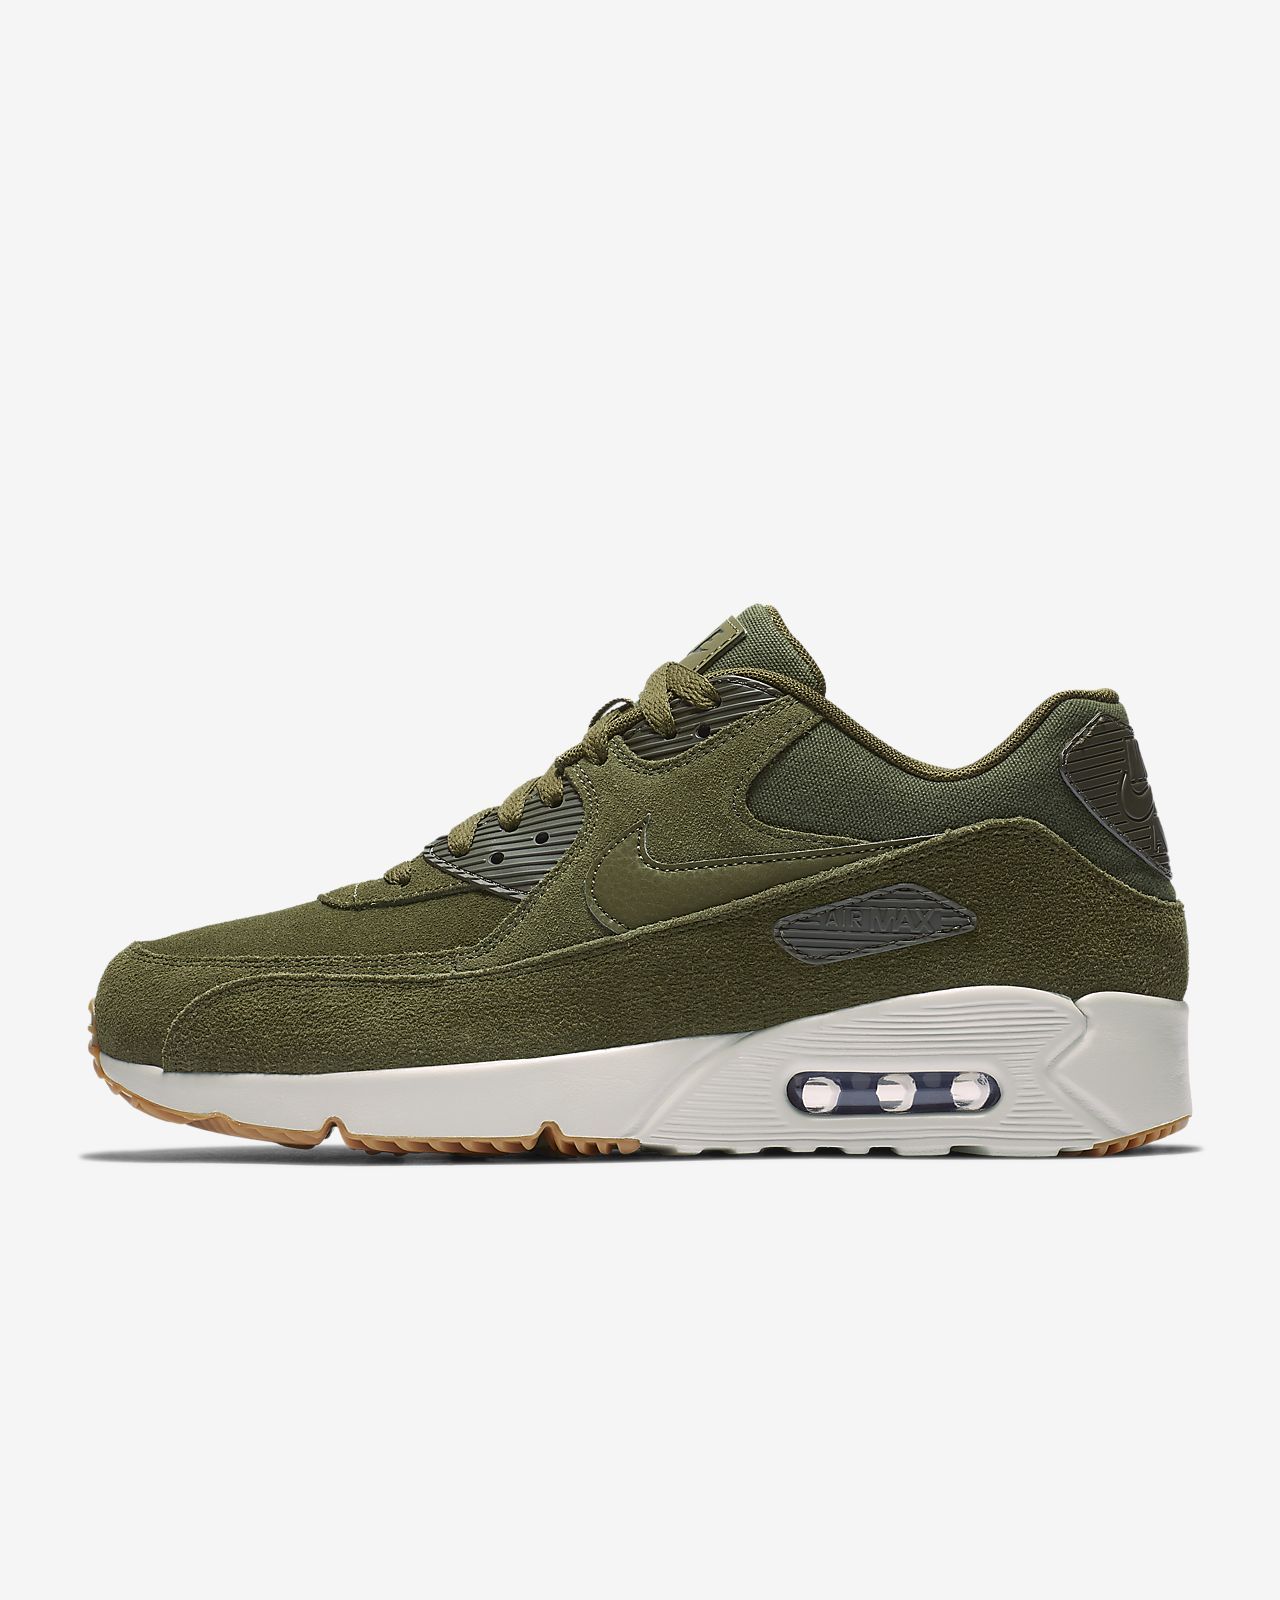 633b675406 Nike Air Max 90 Ultra 2.0 Men s Shoe. Nike.com GB